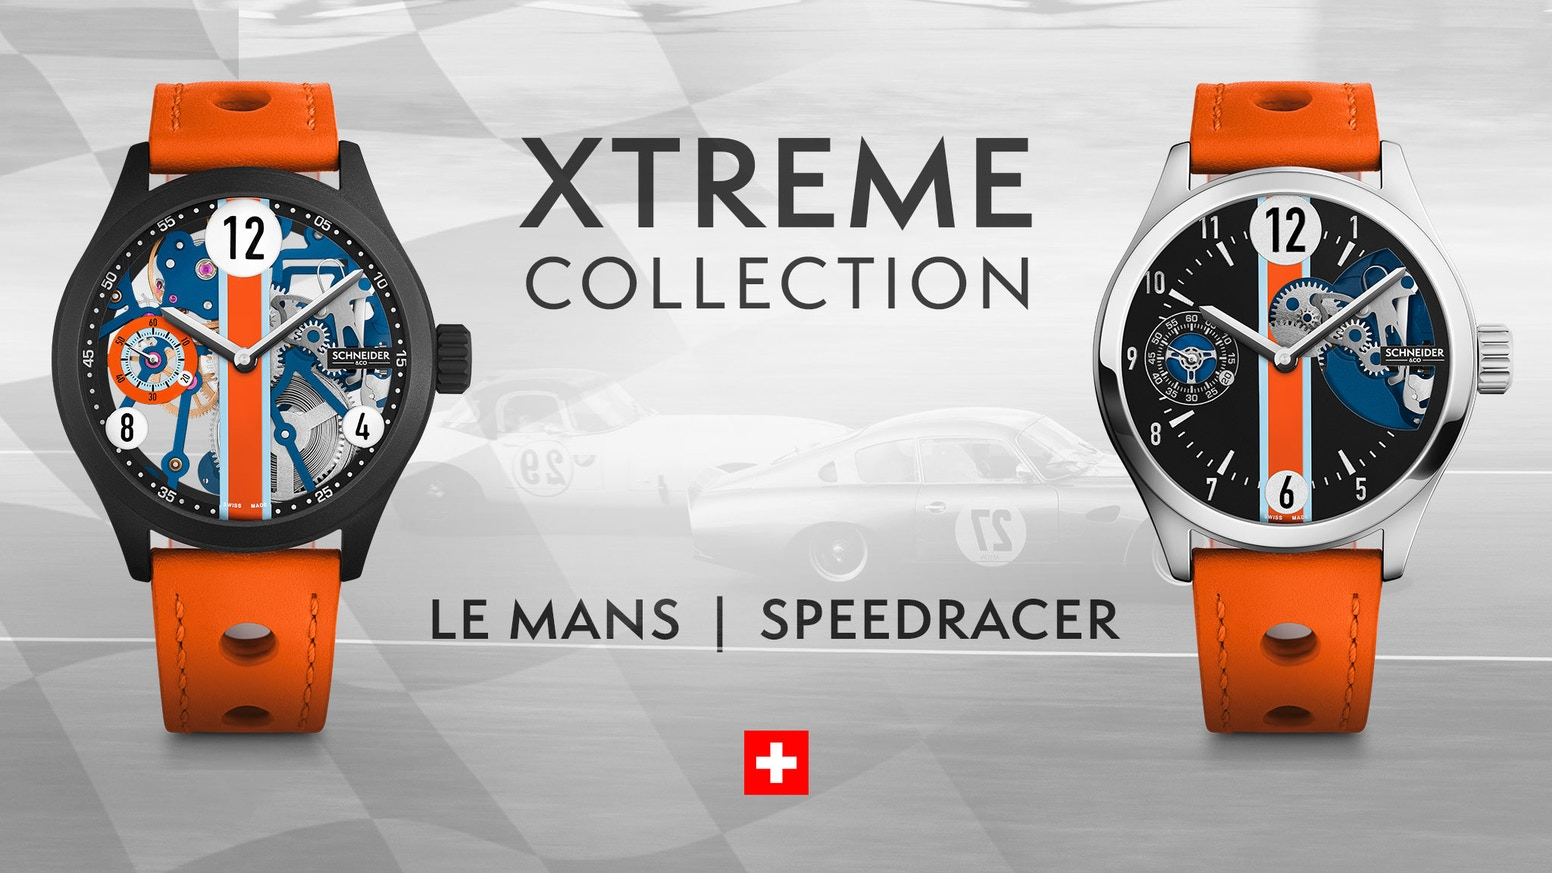 Schneider Co Le Mans Sdracer Aluminum Swiss Watches